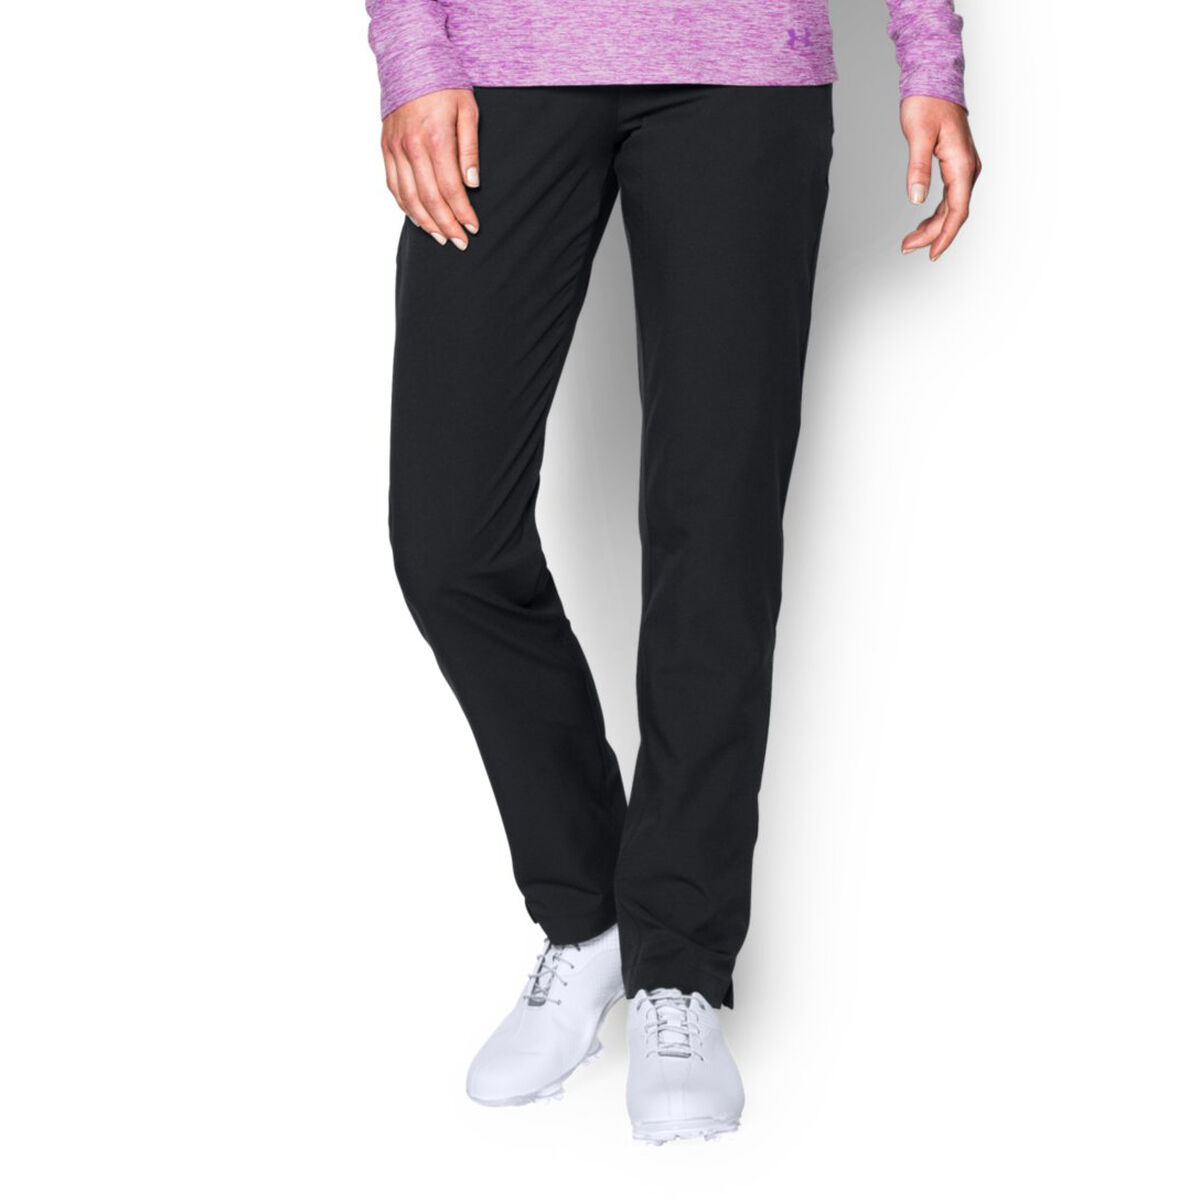 96bcf5b58fe Images. Under Armour Links Pant